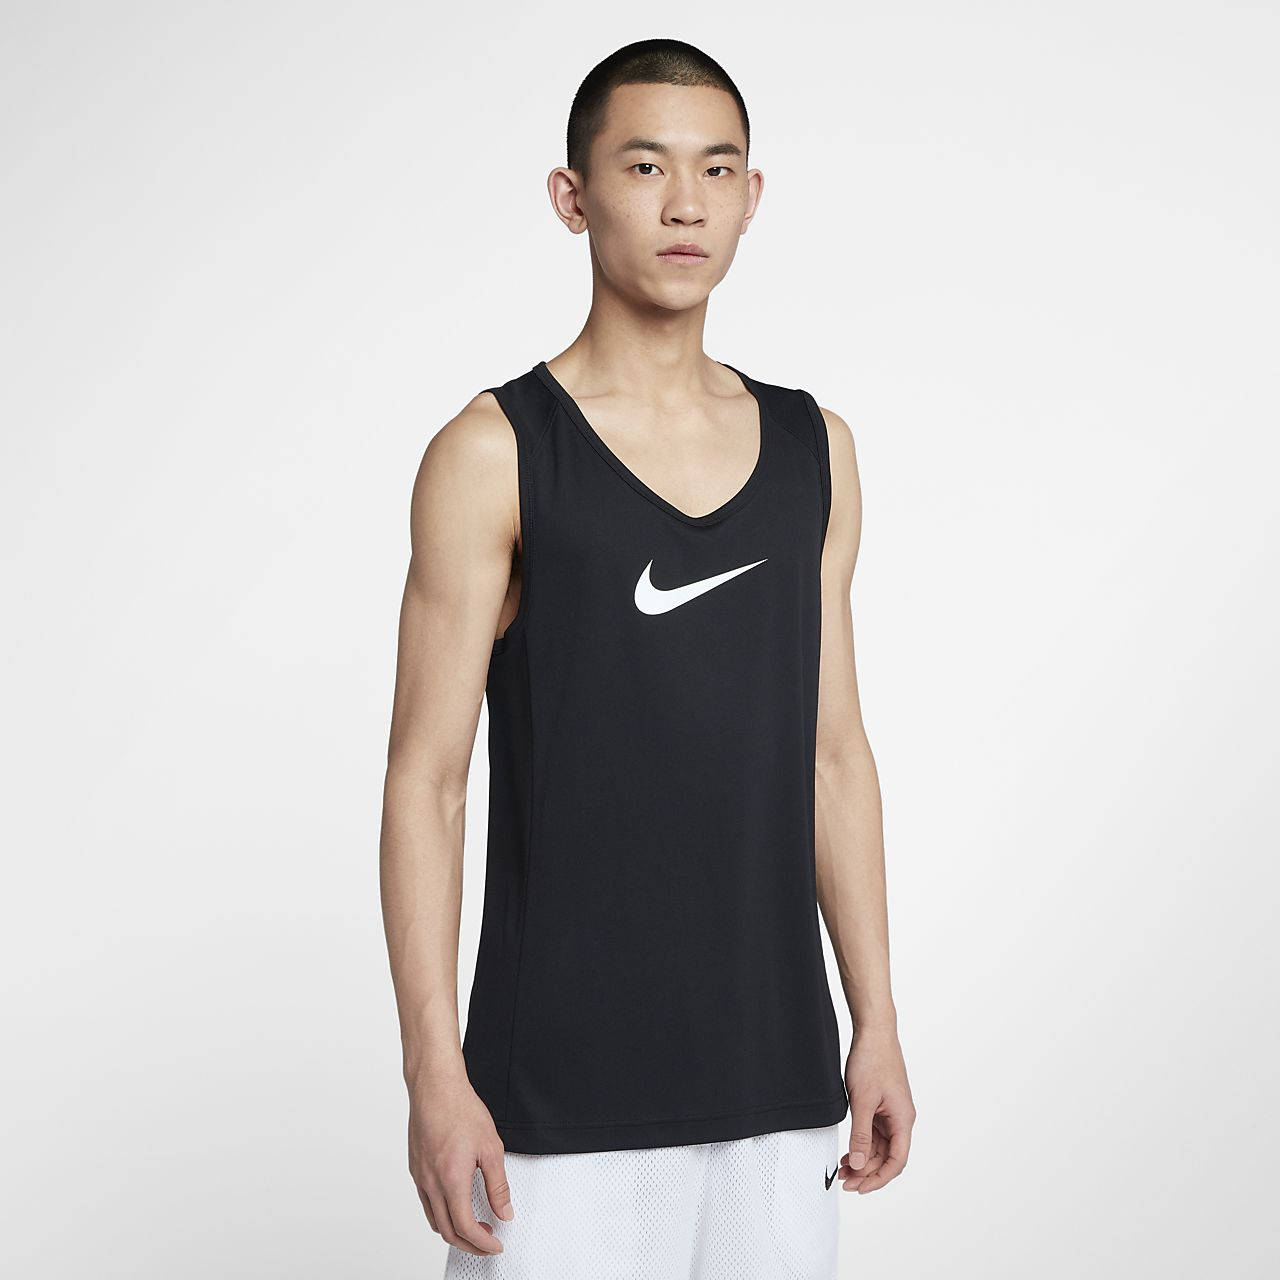 Nike Dri-FIT Men's Basketball Top